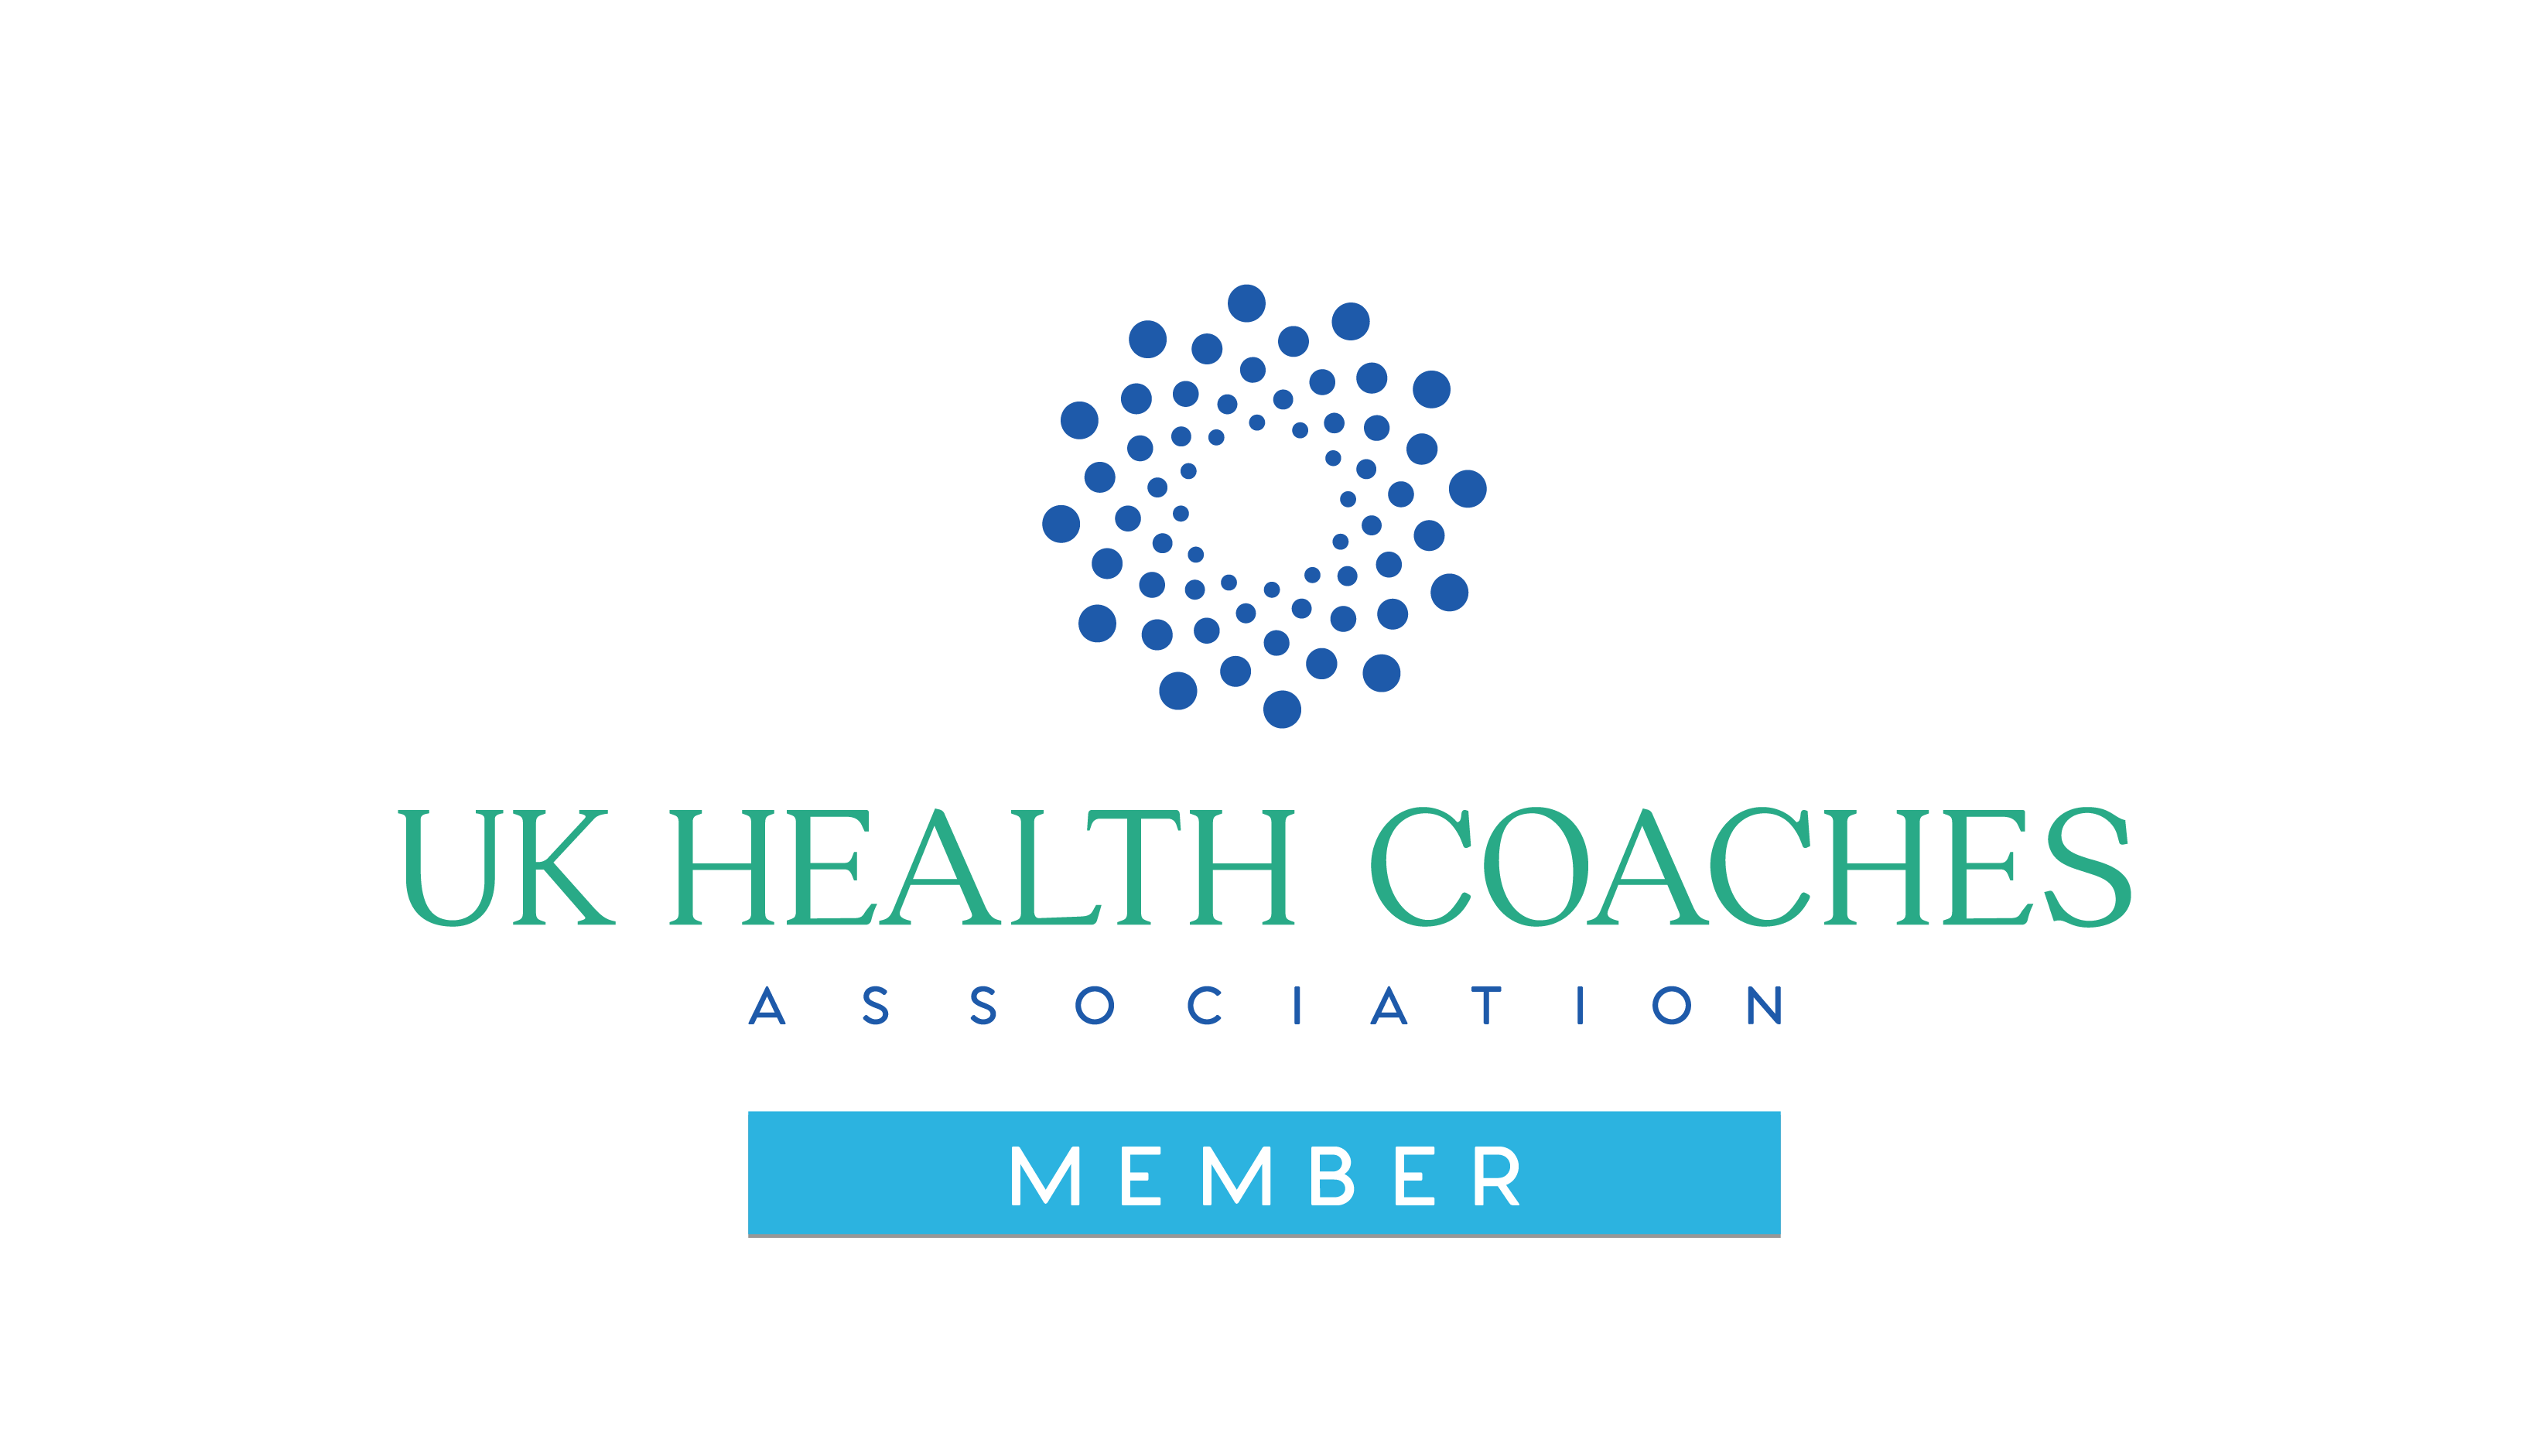 UK Health Coaches Association member_tra